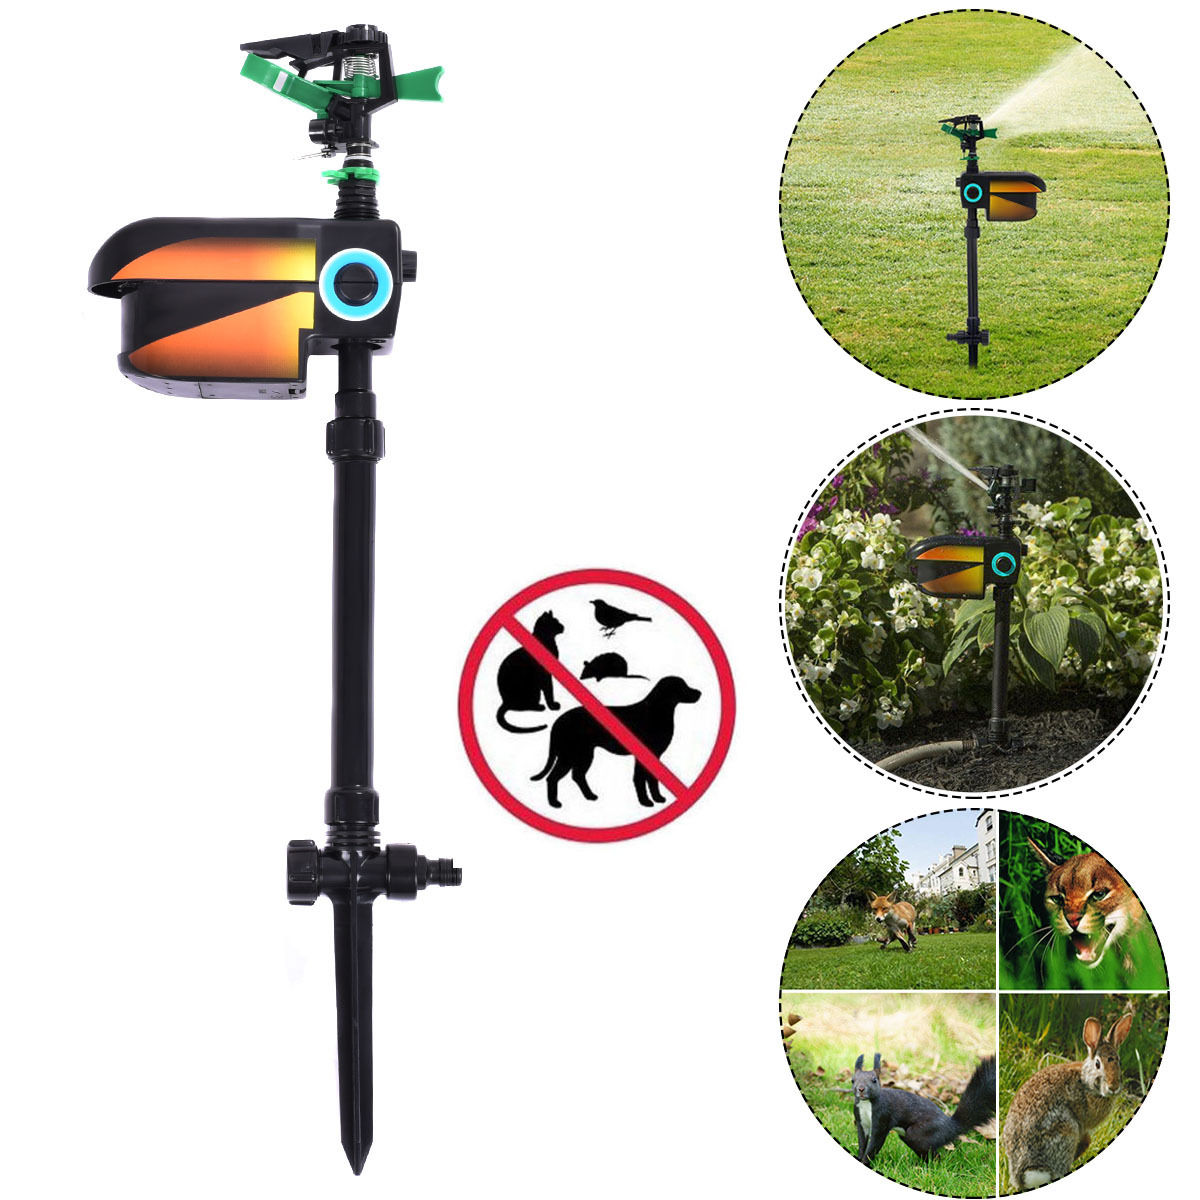 Costway Solar Powered Motion Activated Animal Repellent Sprinkler Black